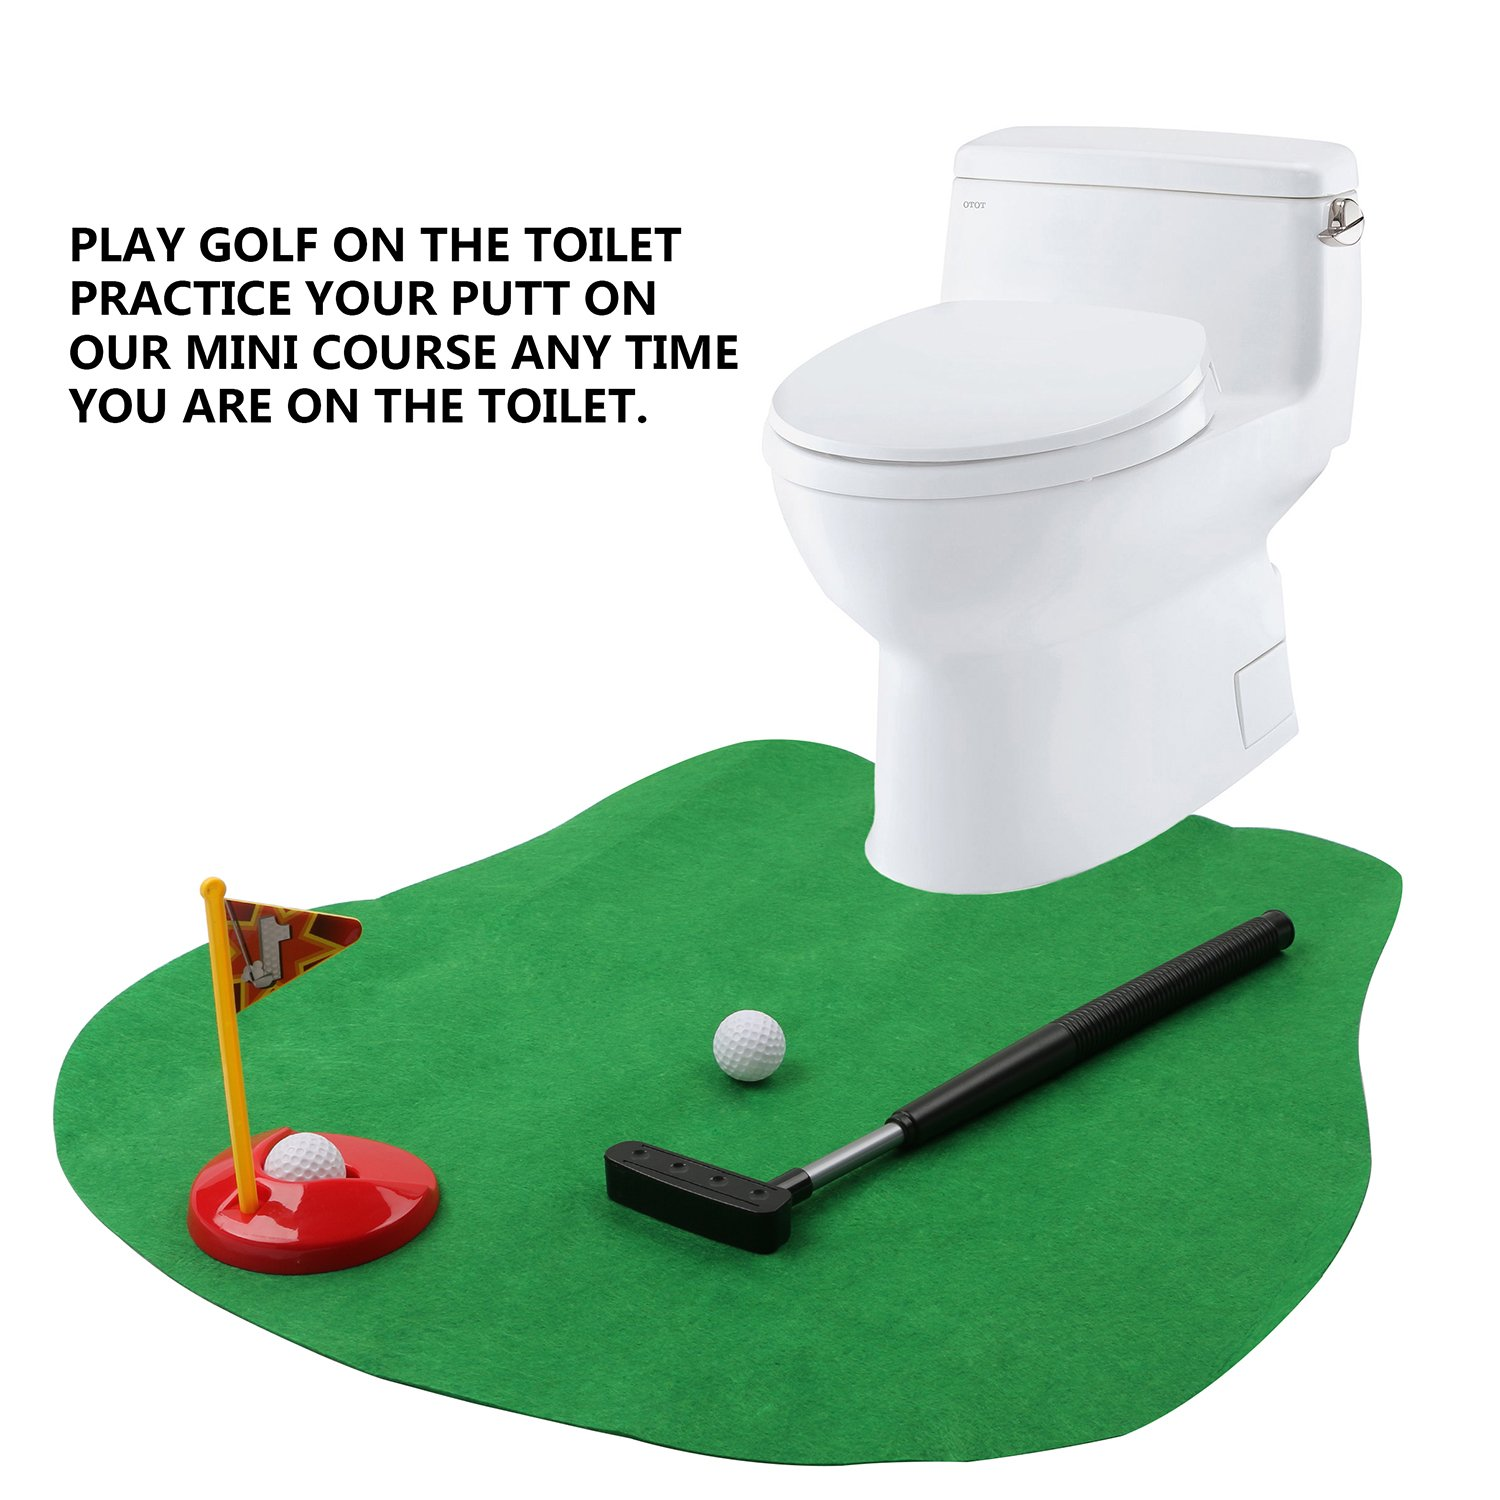 Toilet Golf Putter Practice Bathroom Potty Putter Toilet Commode Stool Mat Sets Gift for Boyfriend Bath Room Set Dropshipping